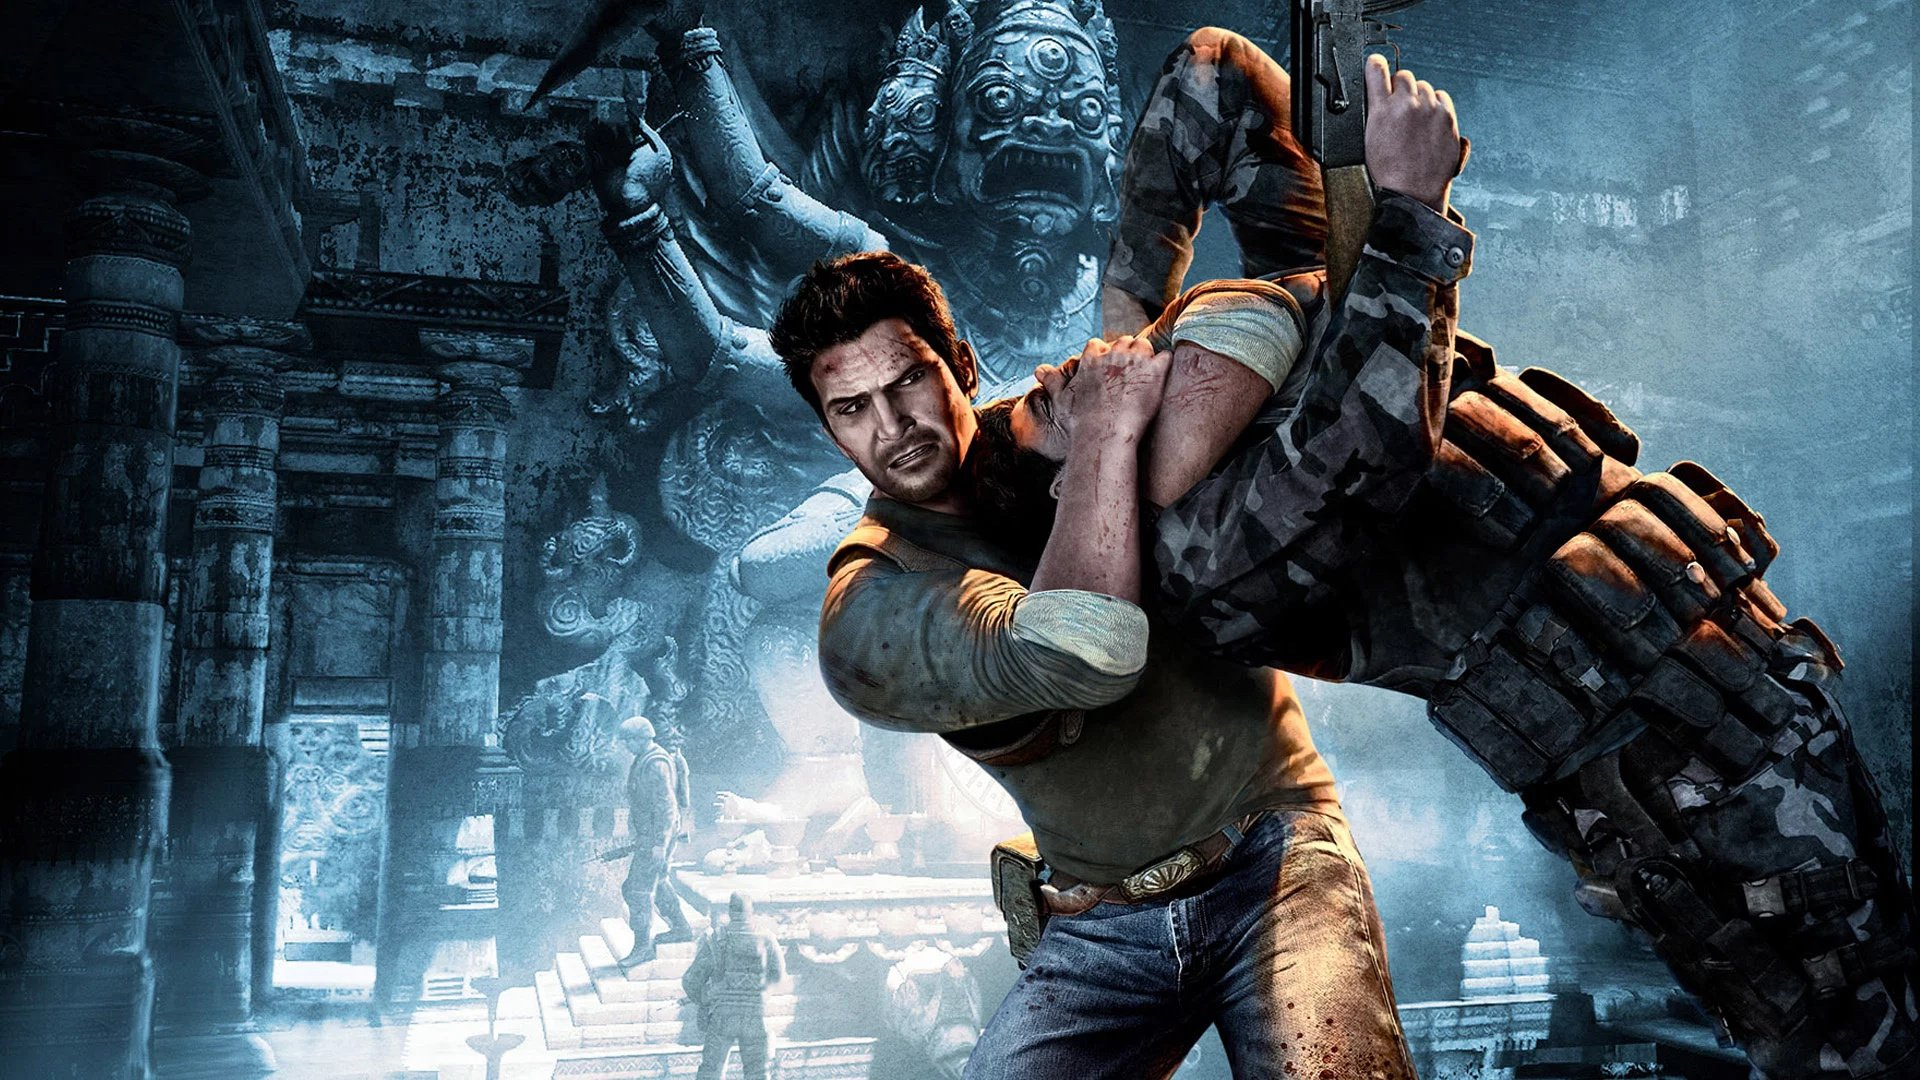 Feature: Uncharted 2 Kickstarted a New Age of First Party Success for Sony